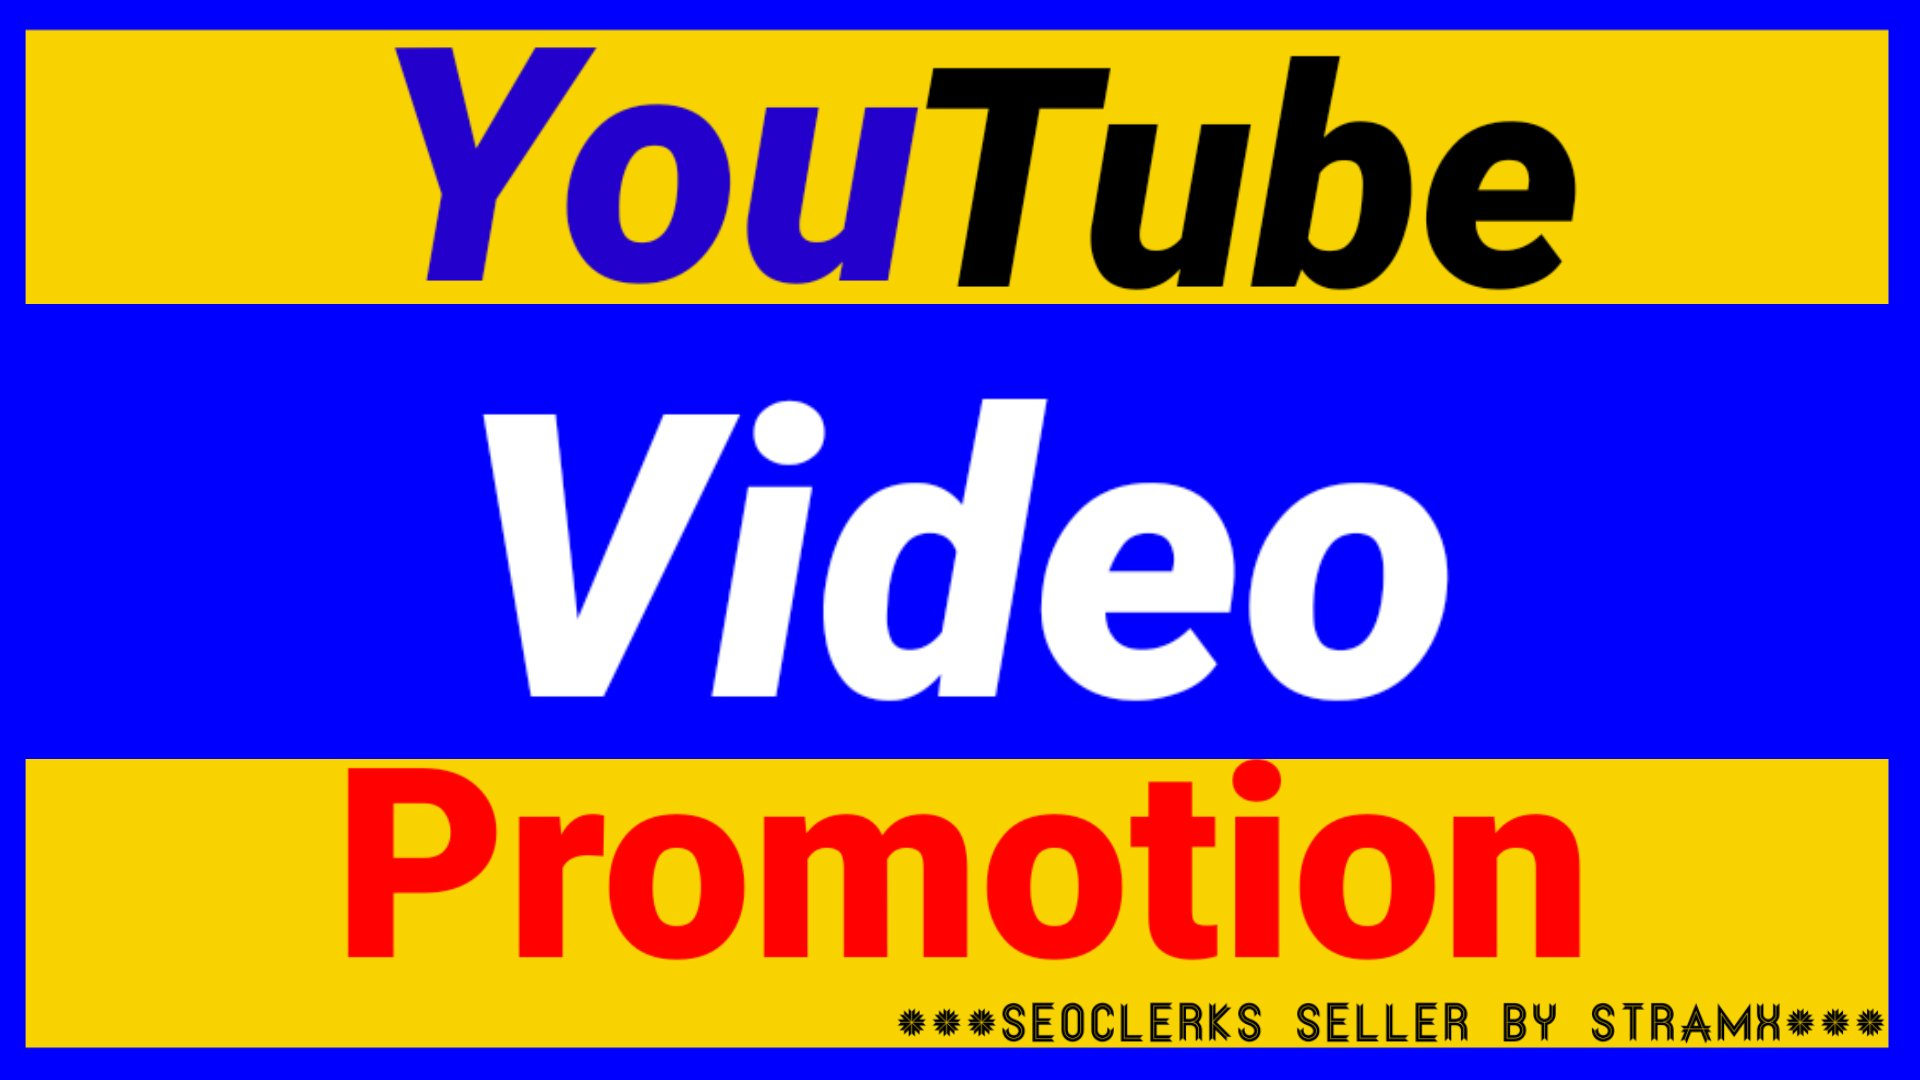 High Quality YouTube Video Promotion and Marketing fast Delivery 12 hours'